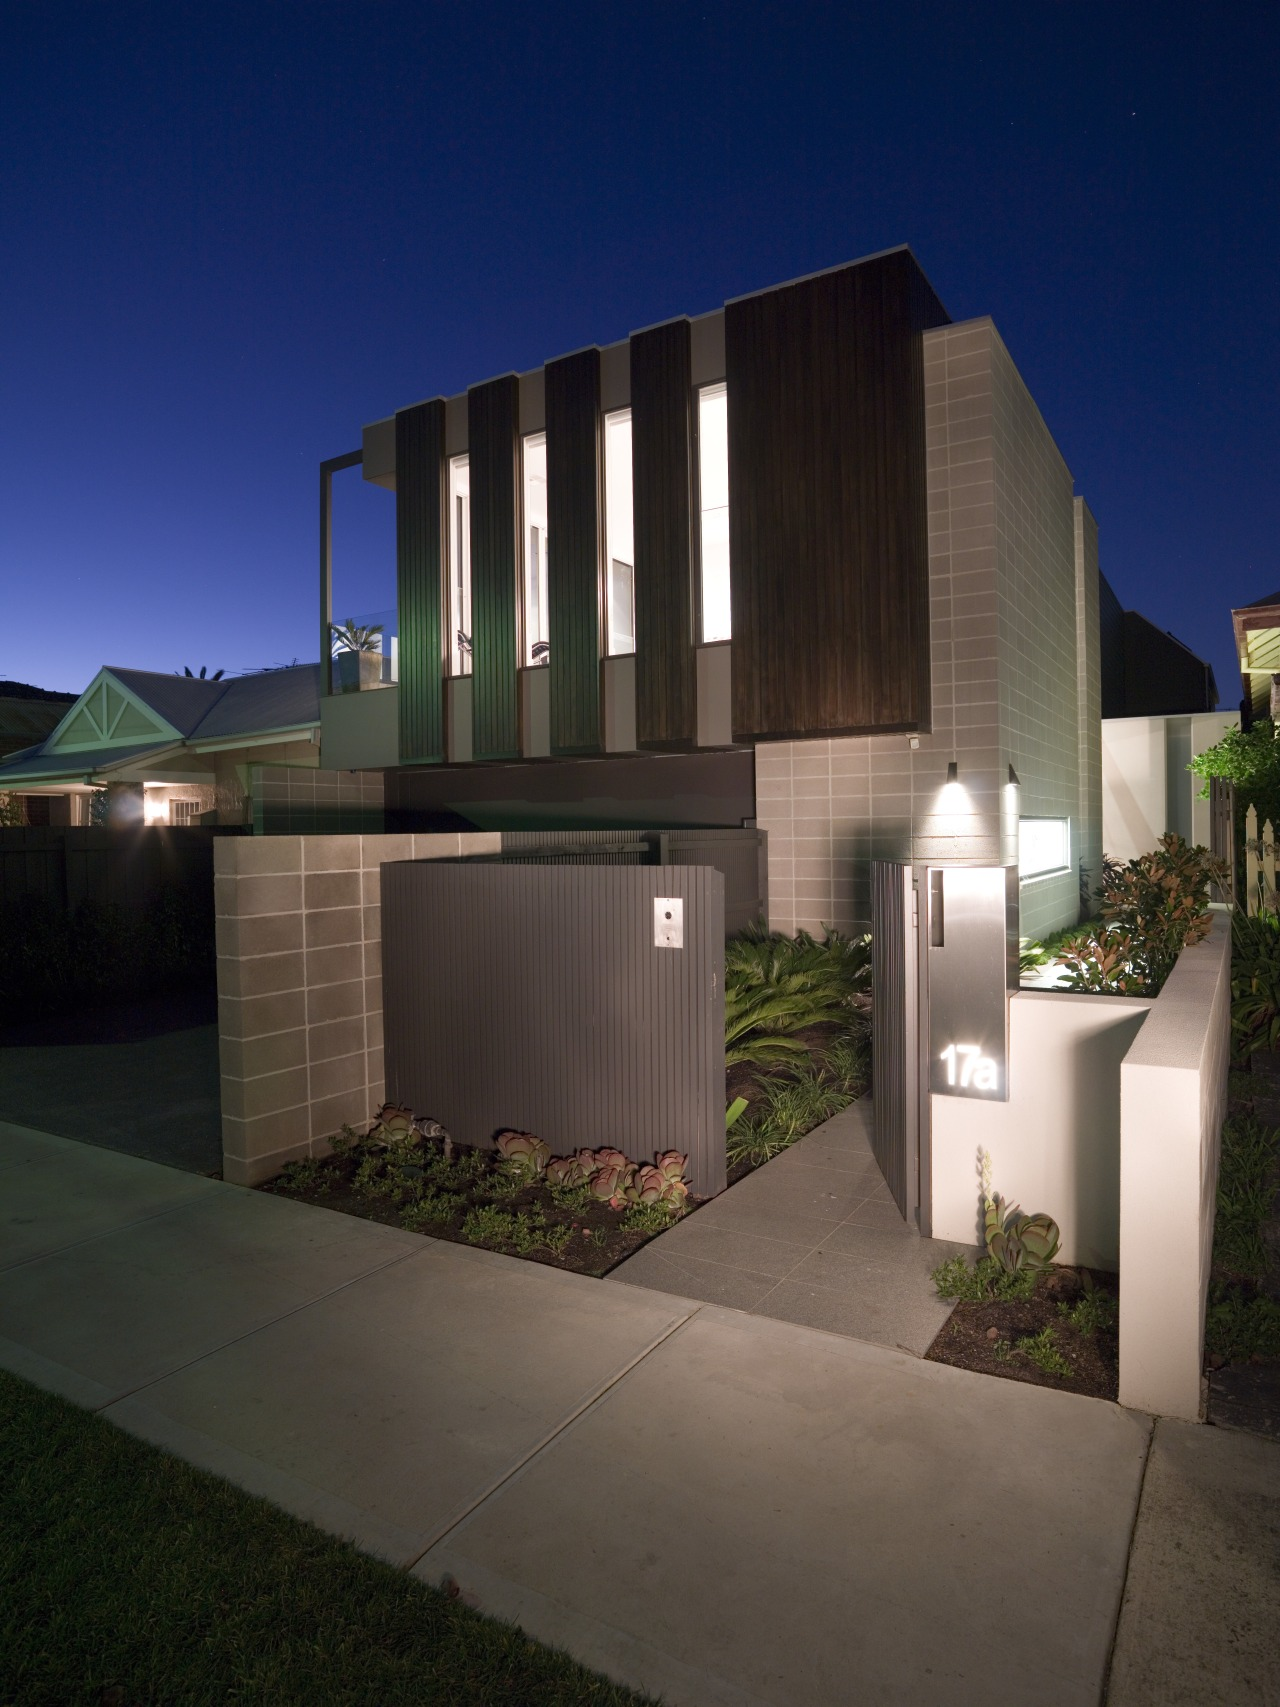 A cantilevered first storey adds a sculptural elemnt architecture, building, condominium, estate, facade, home, house, property, real estate, residential area, black, blue